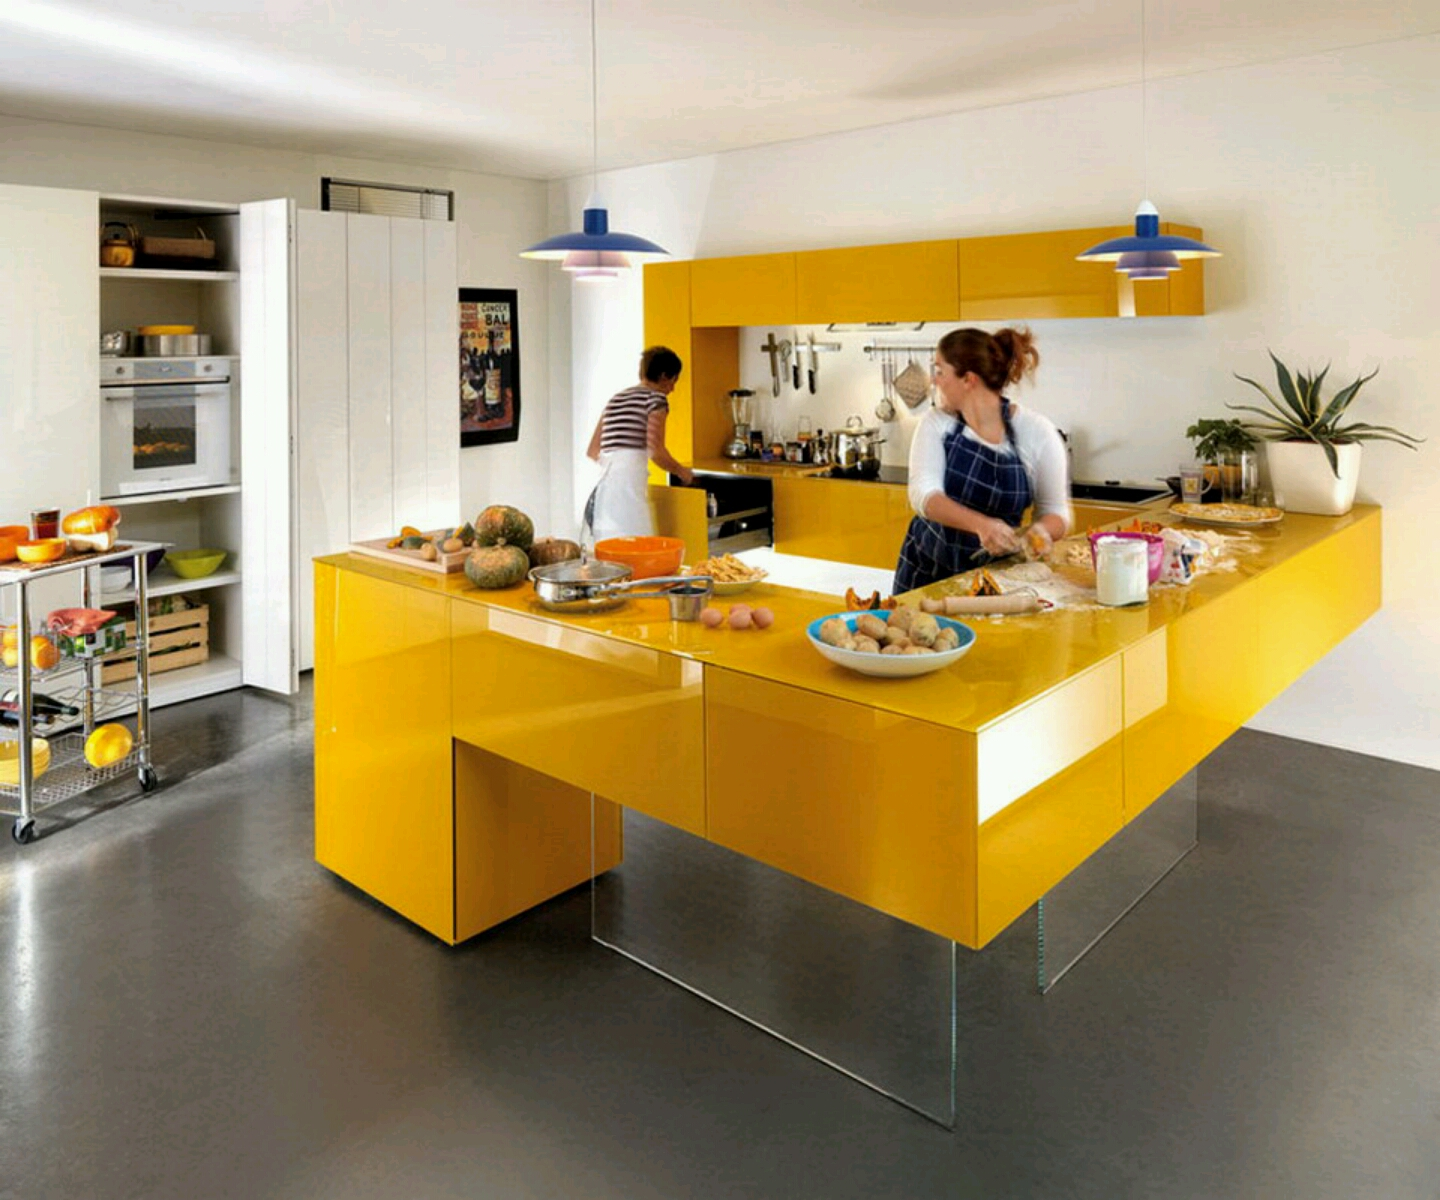 Modern kitchen cabinets designs ideas furniture gallery - Images of modern kitchen designs ...